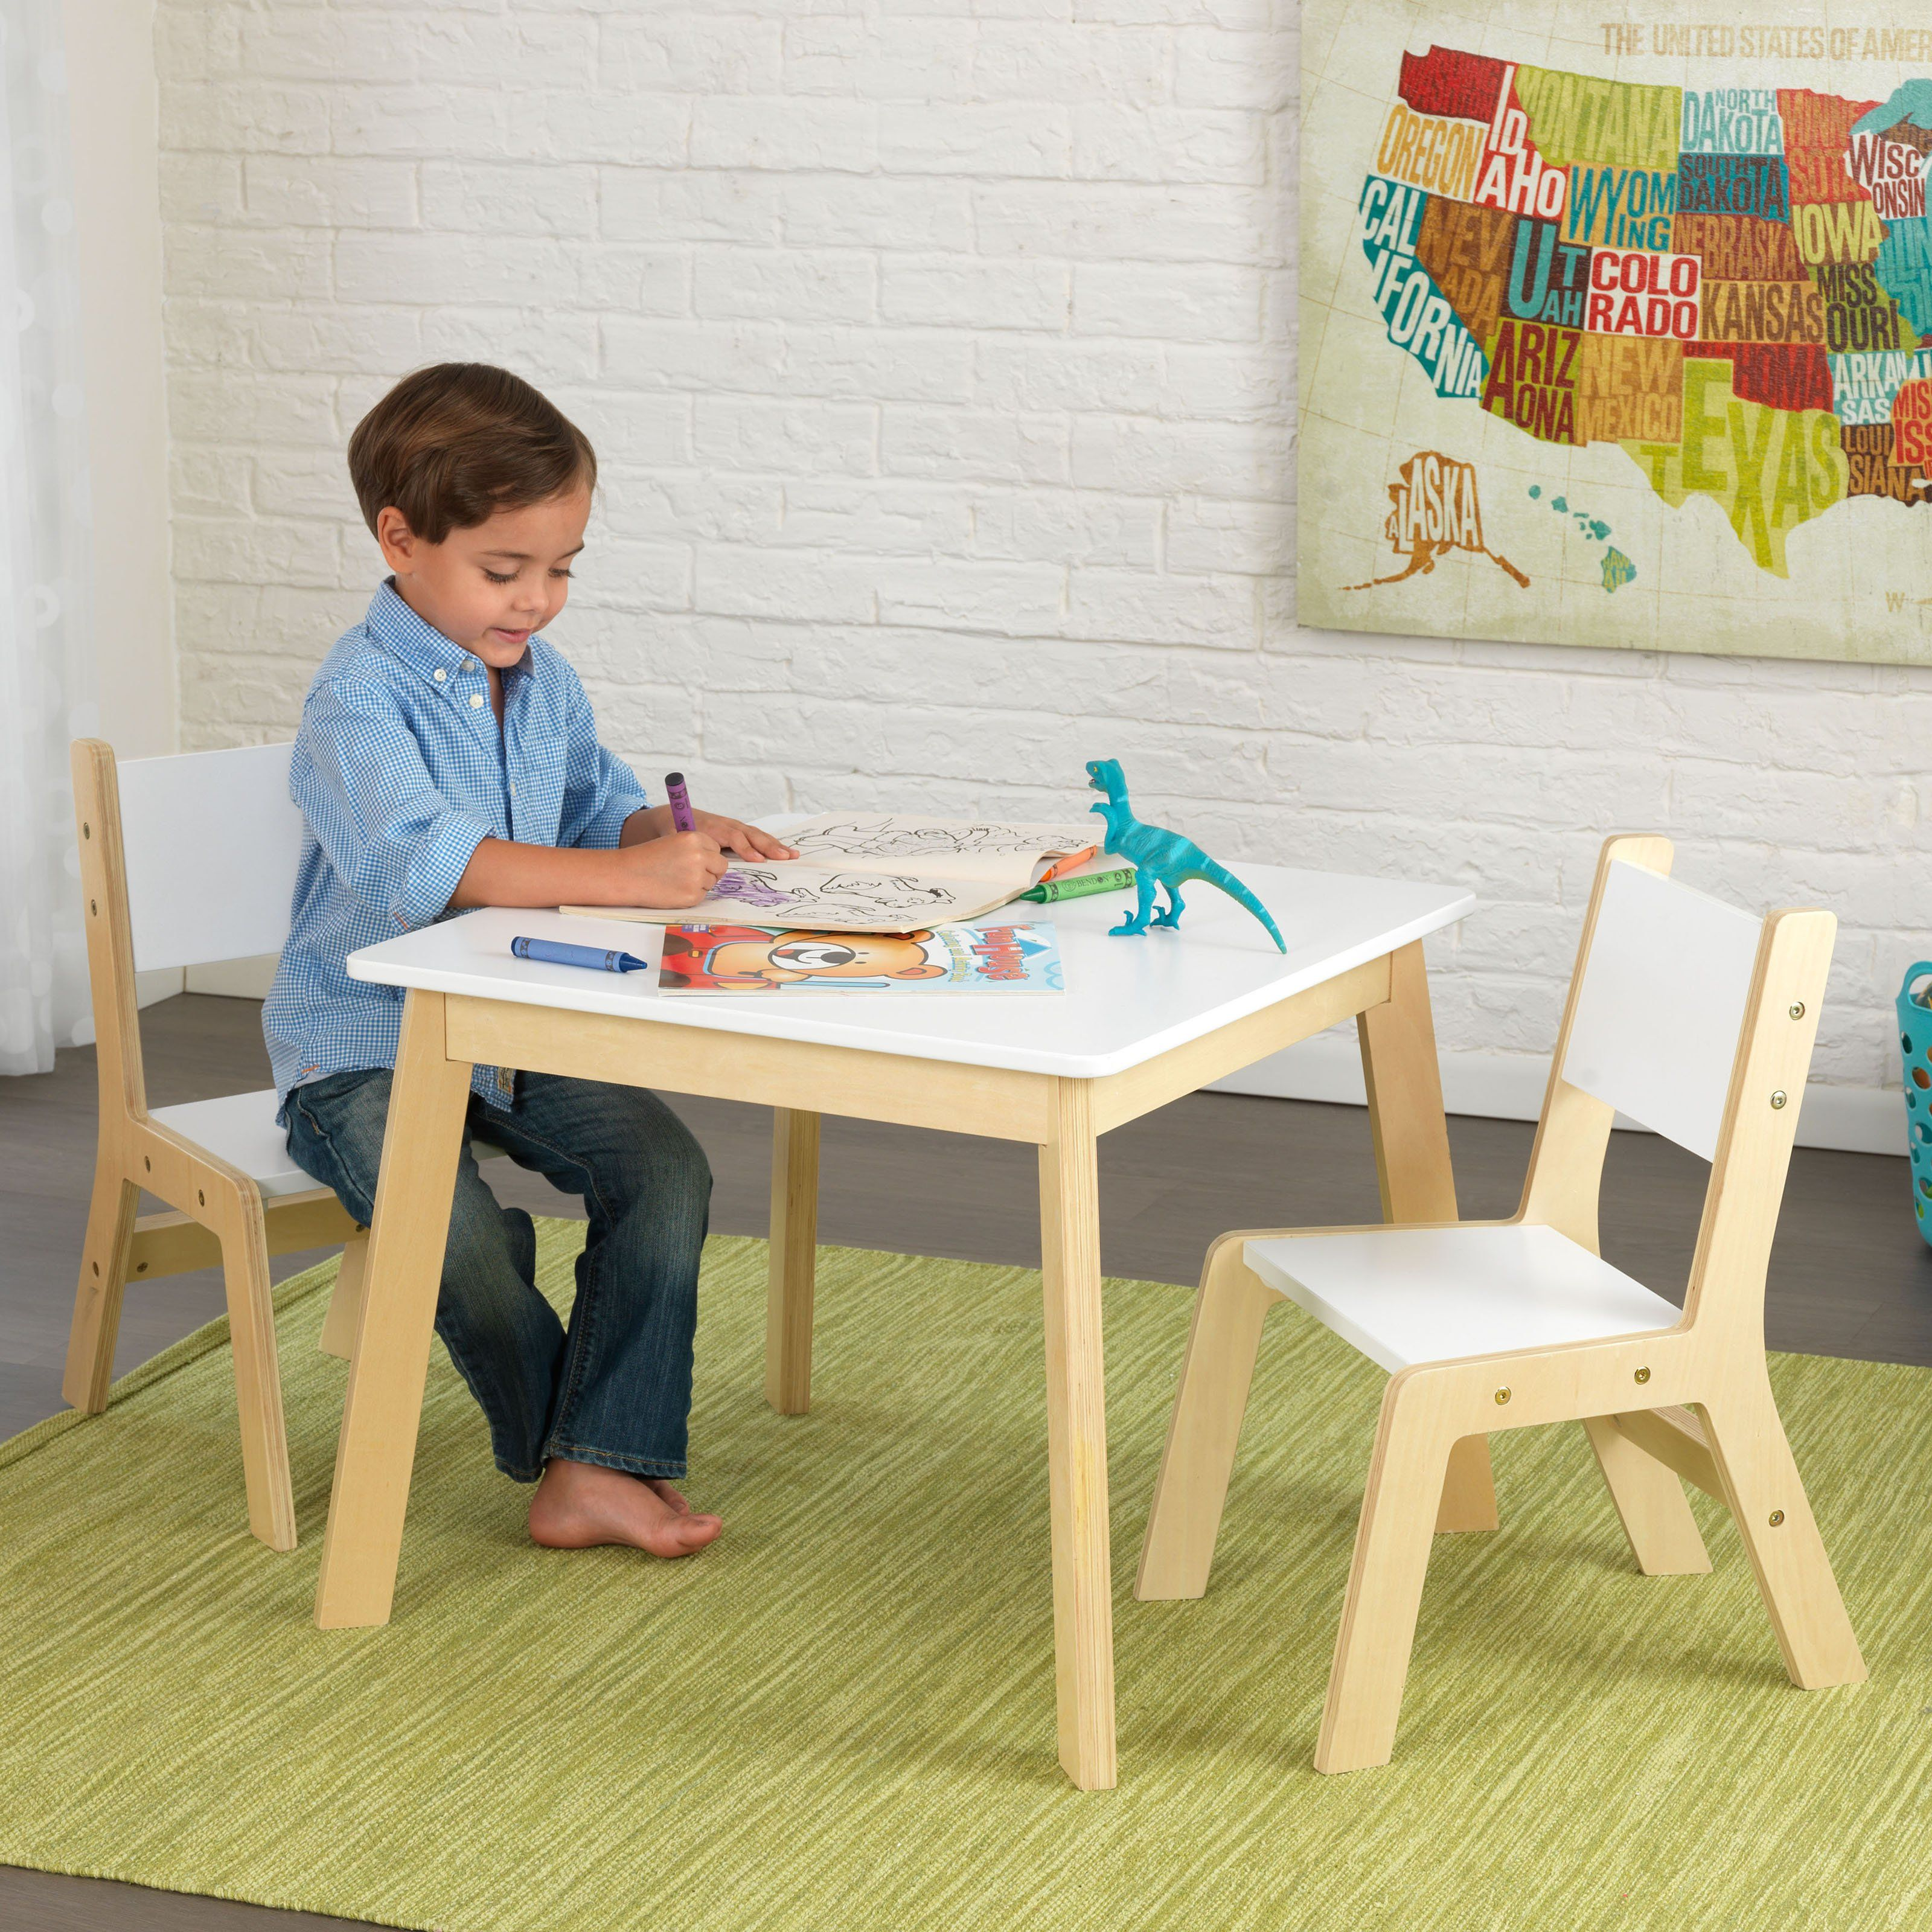 KidKraft Modern Table and 2 Chair Set - Clean Scandinavian style perfectly suits the playroom or  sc 1 st  Pinterest & KidKraft Modern Table and 2 Chair Set - Clean Scandinavian style ...